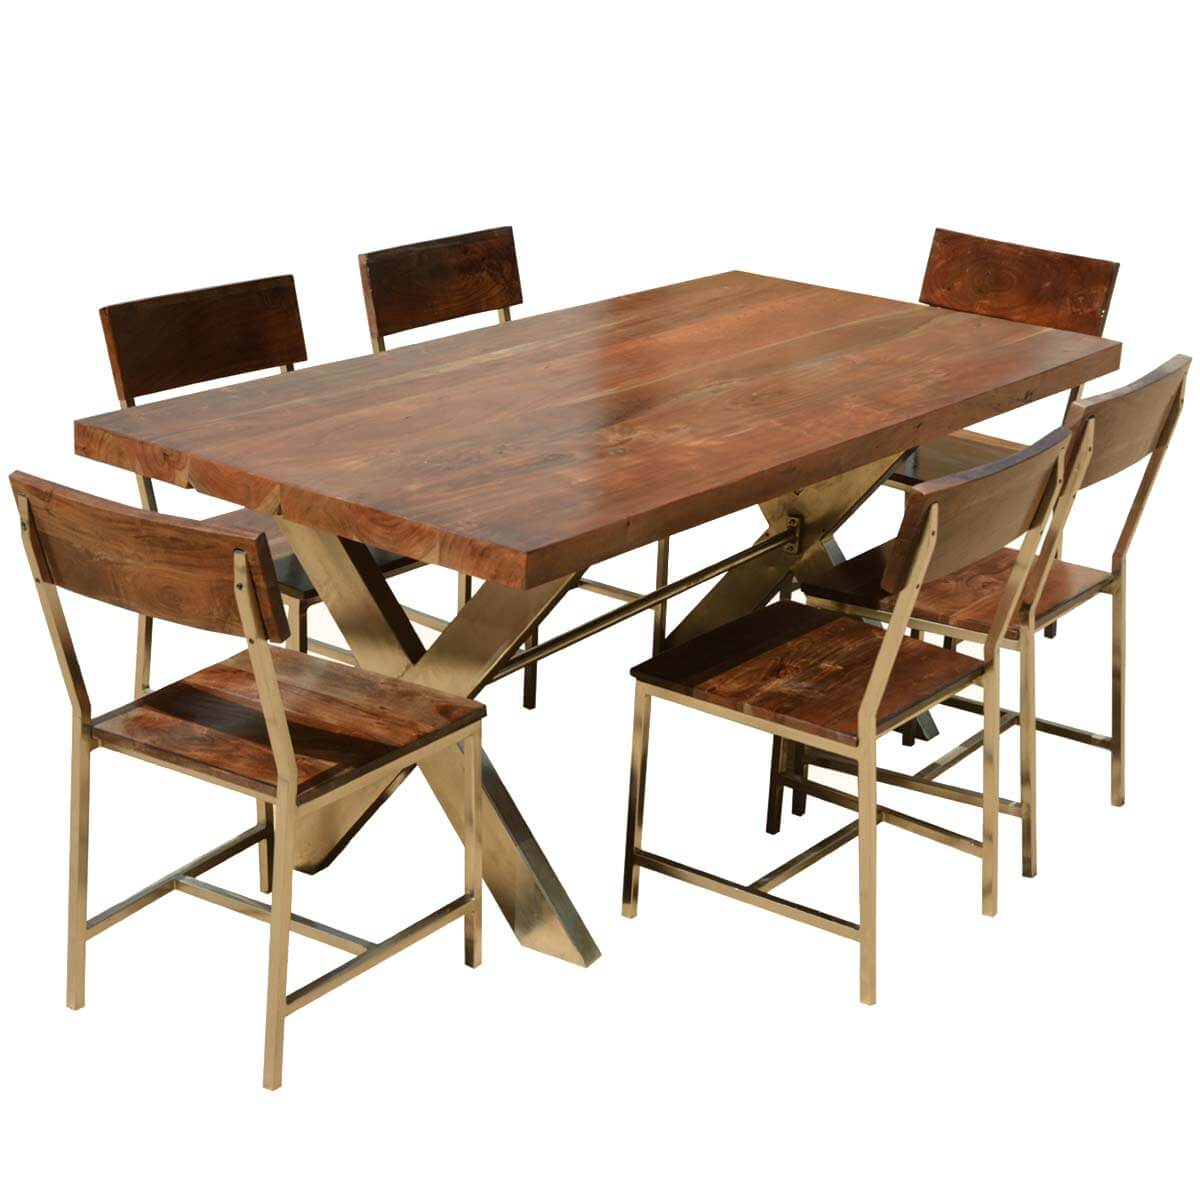 Contemporary Double X Acacia Wood Iron 72 Dining Table W 6 Chairs